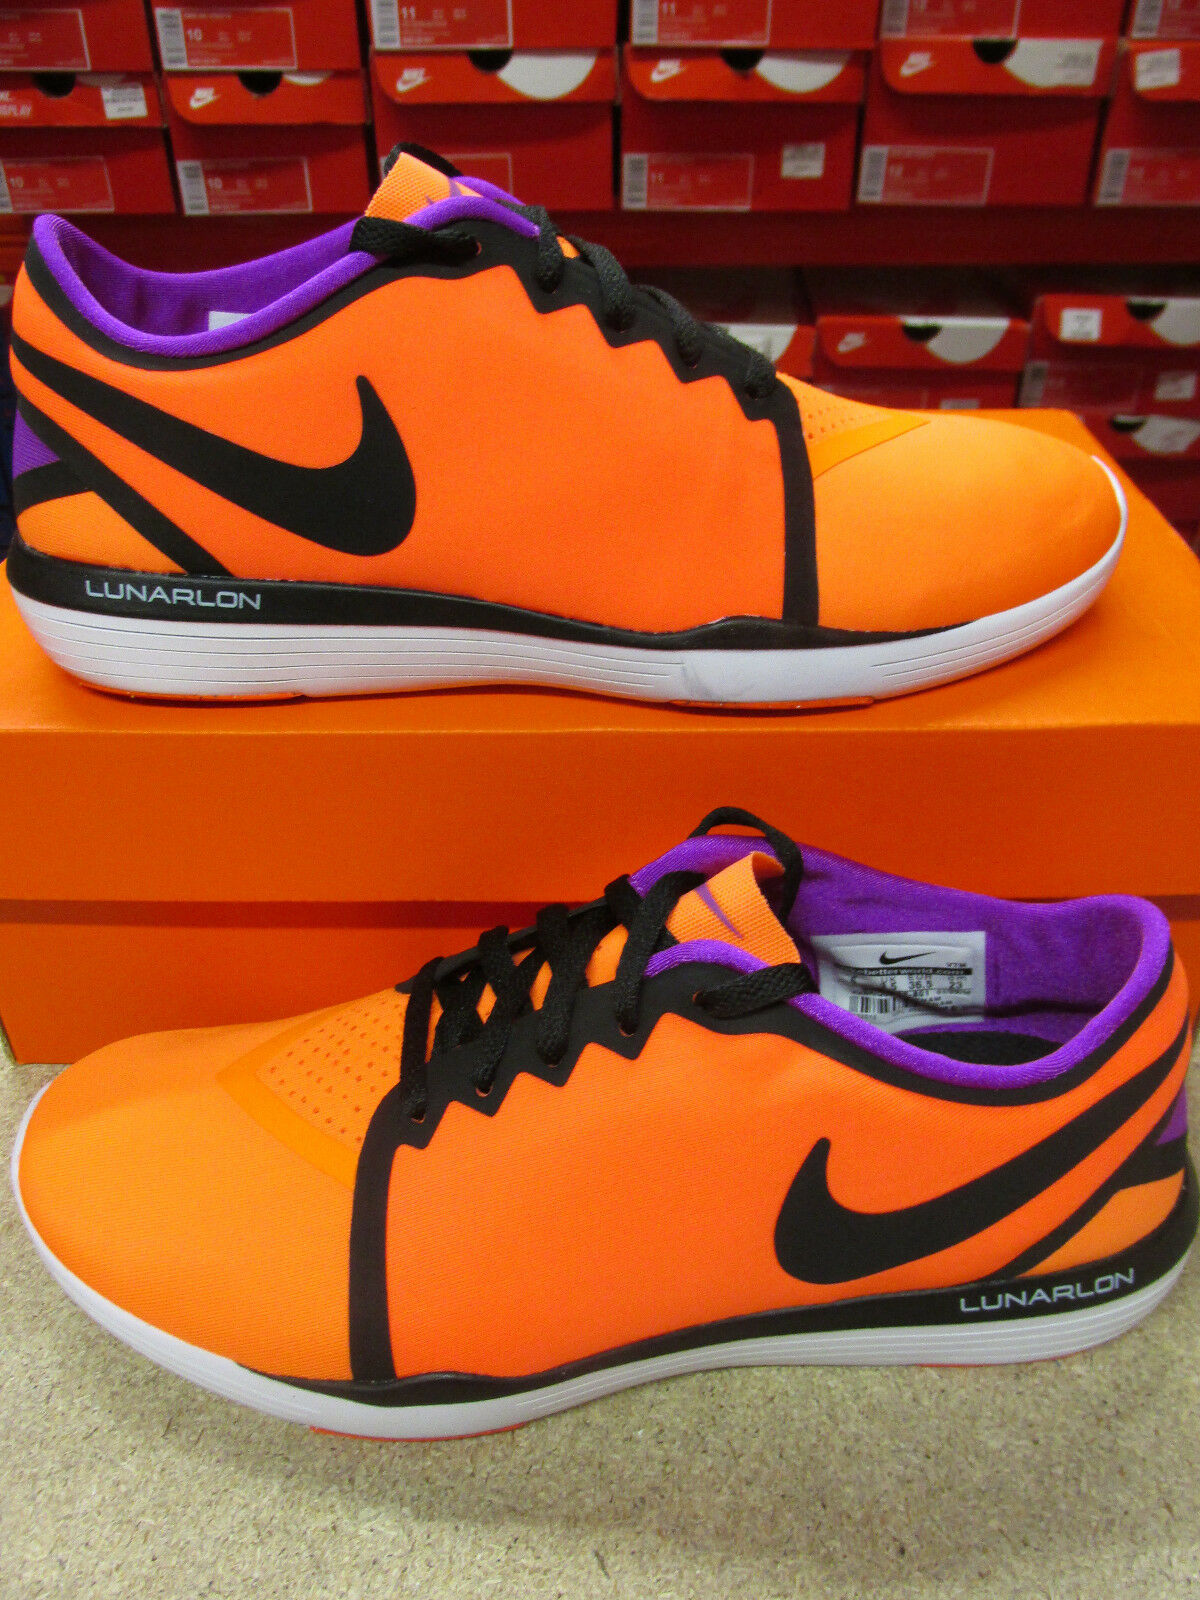 Nike Womens Lunar Sculpt Running Trainers 818062 801 Sneakers Shoes